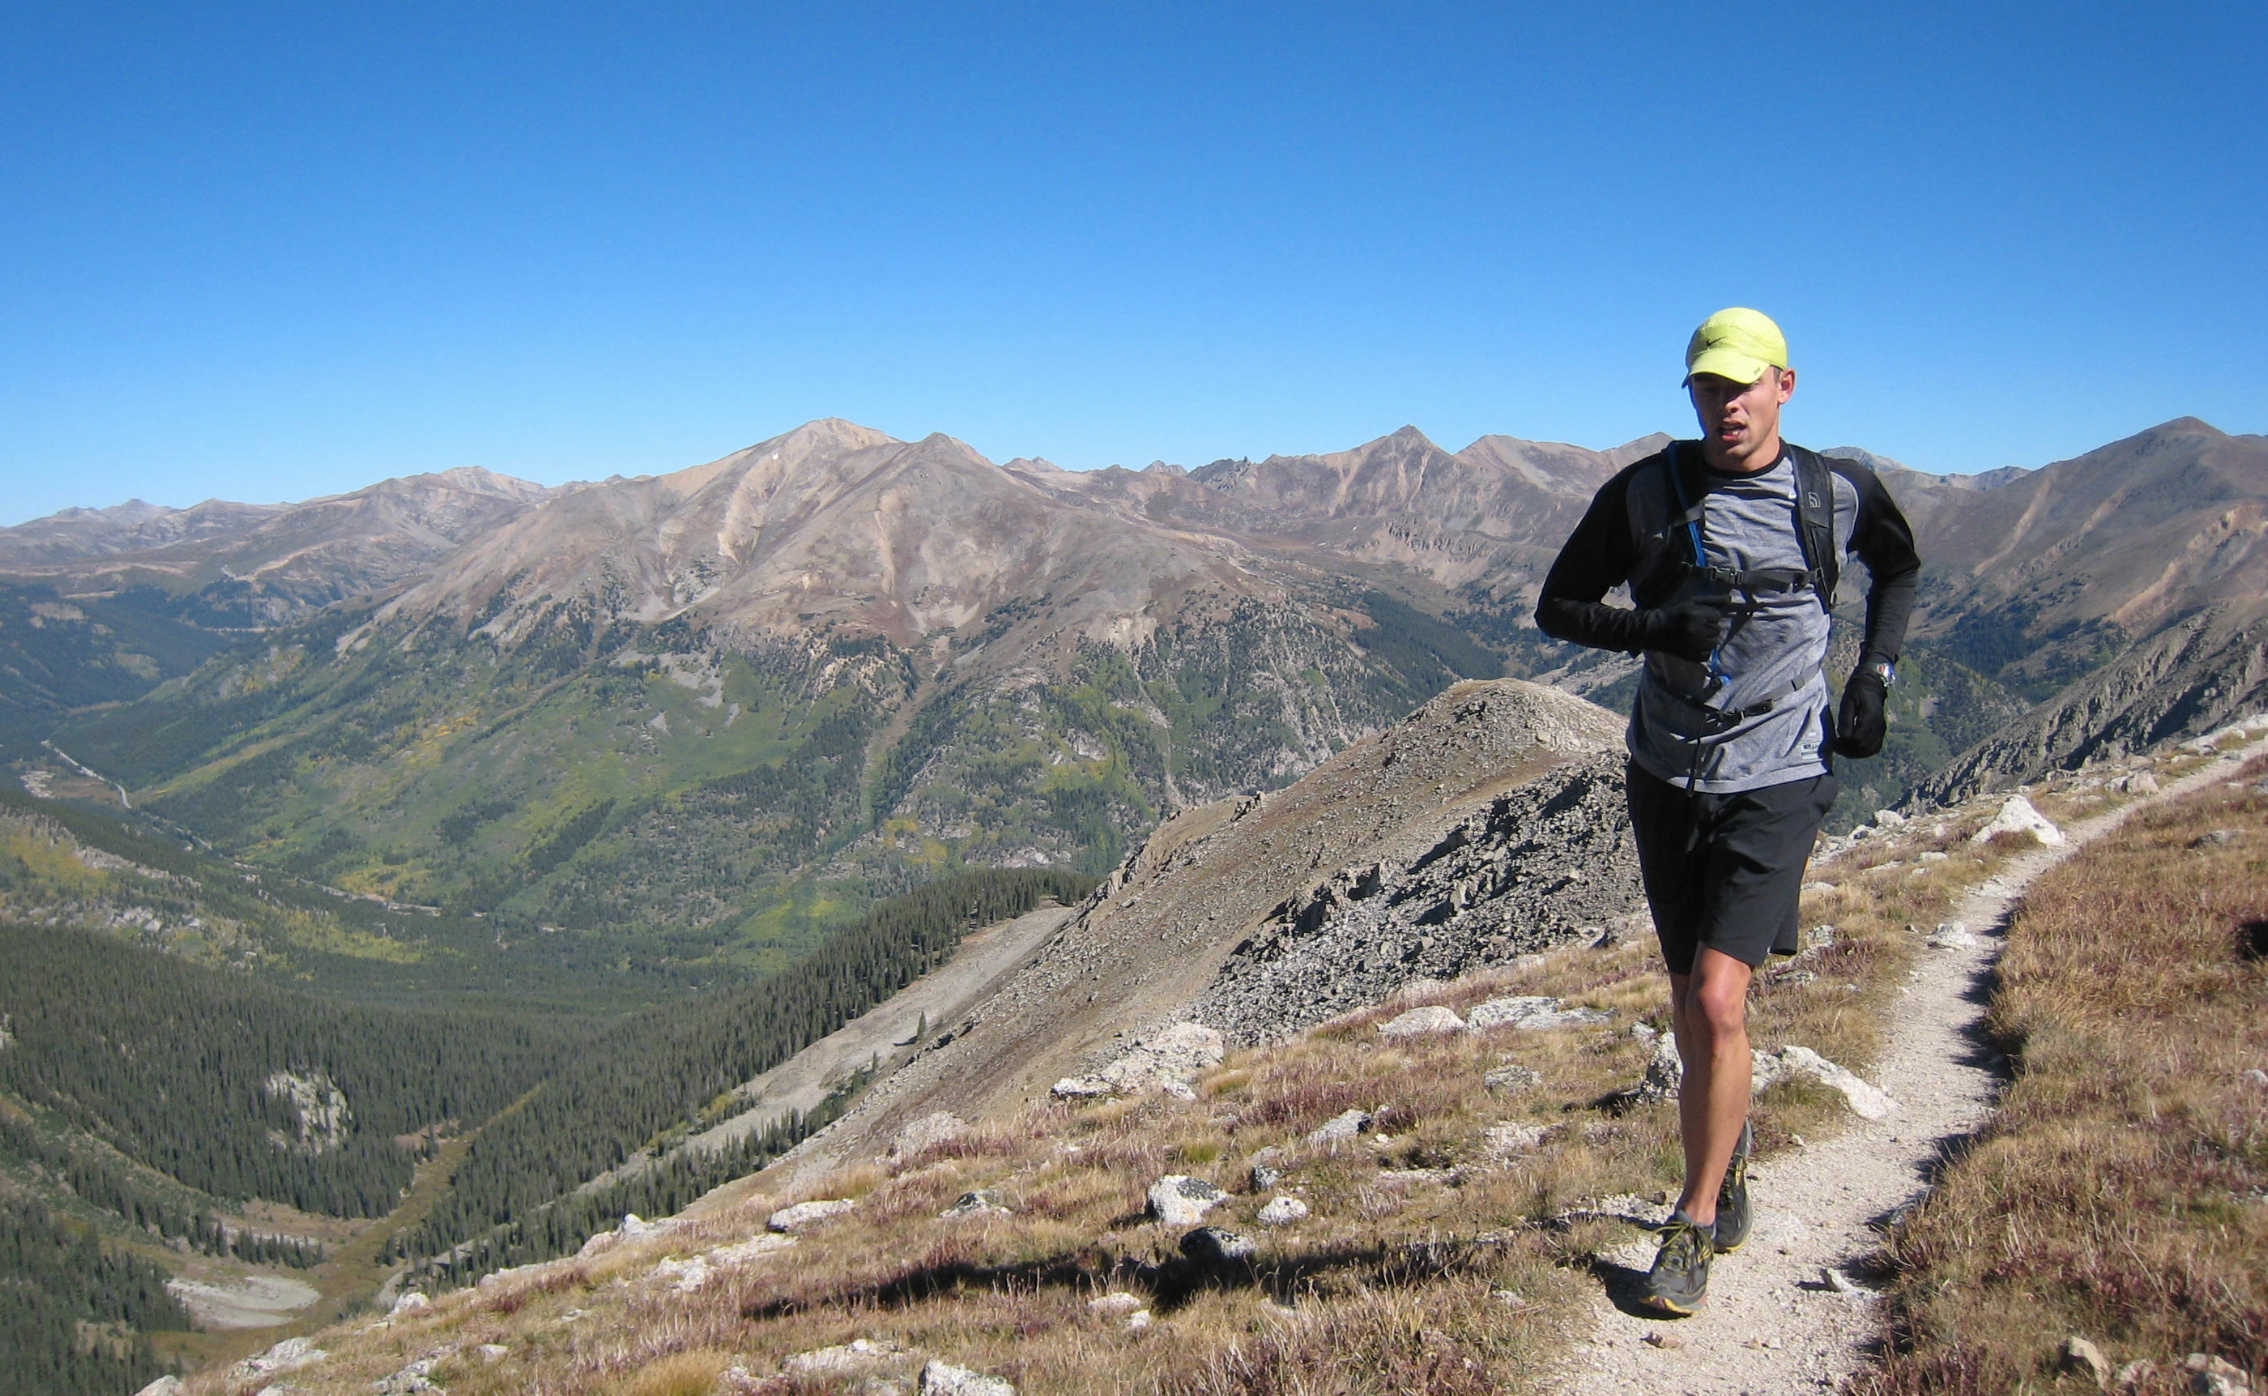 mountain running - Daily Cappuccino - Lifestyle Blog